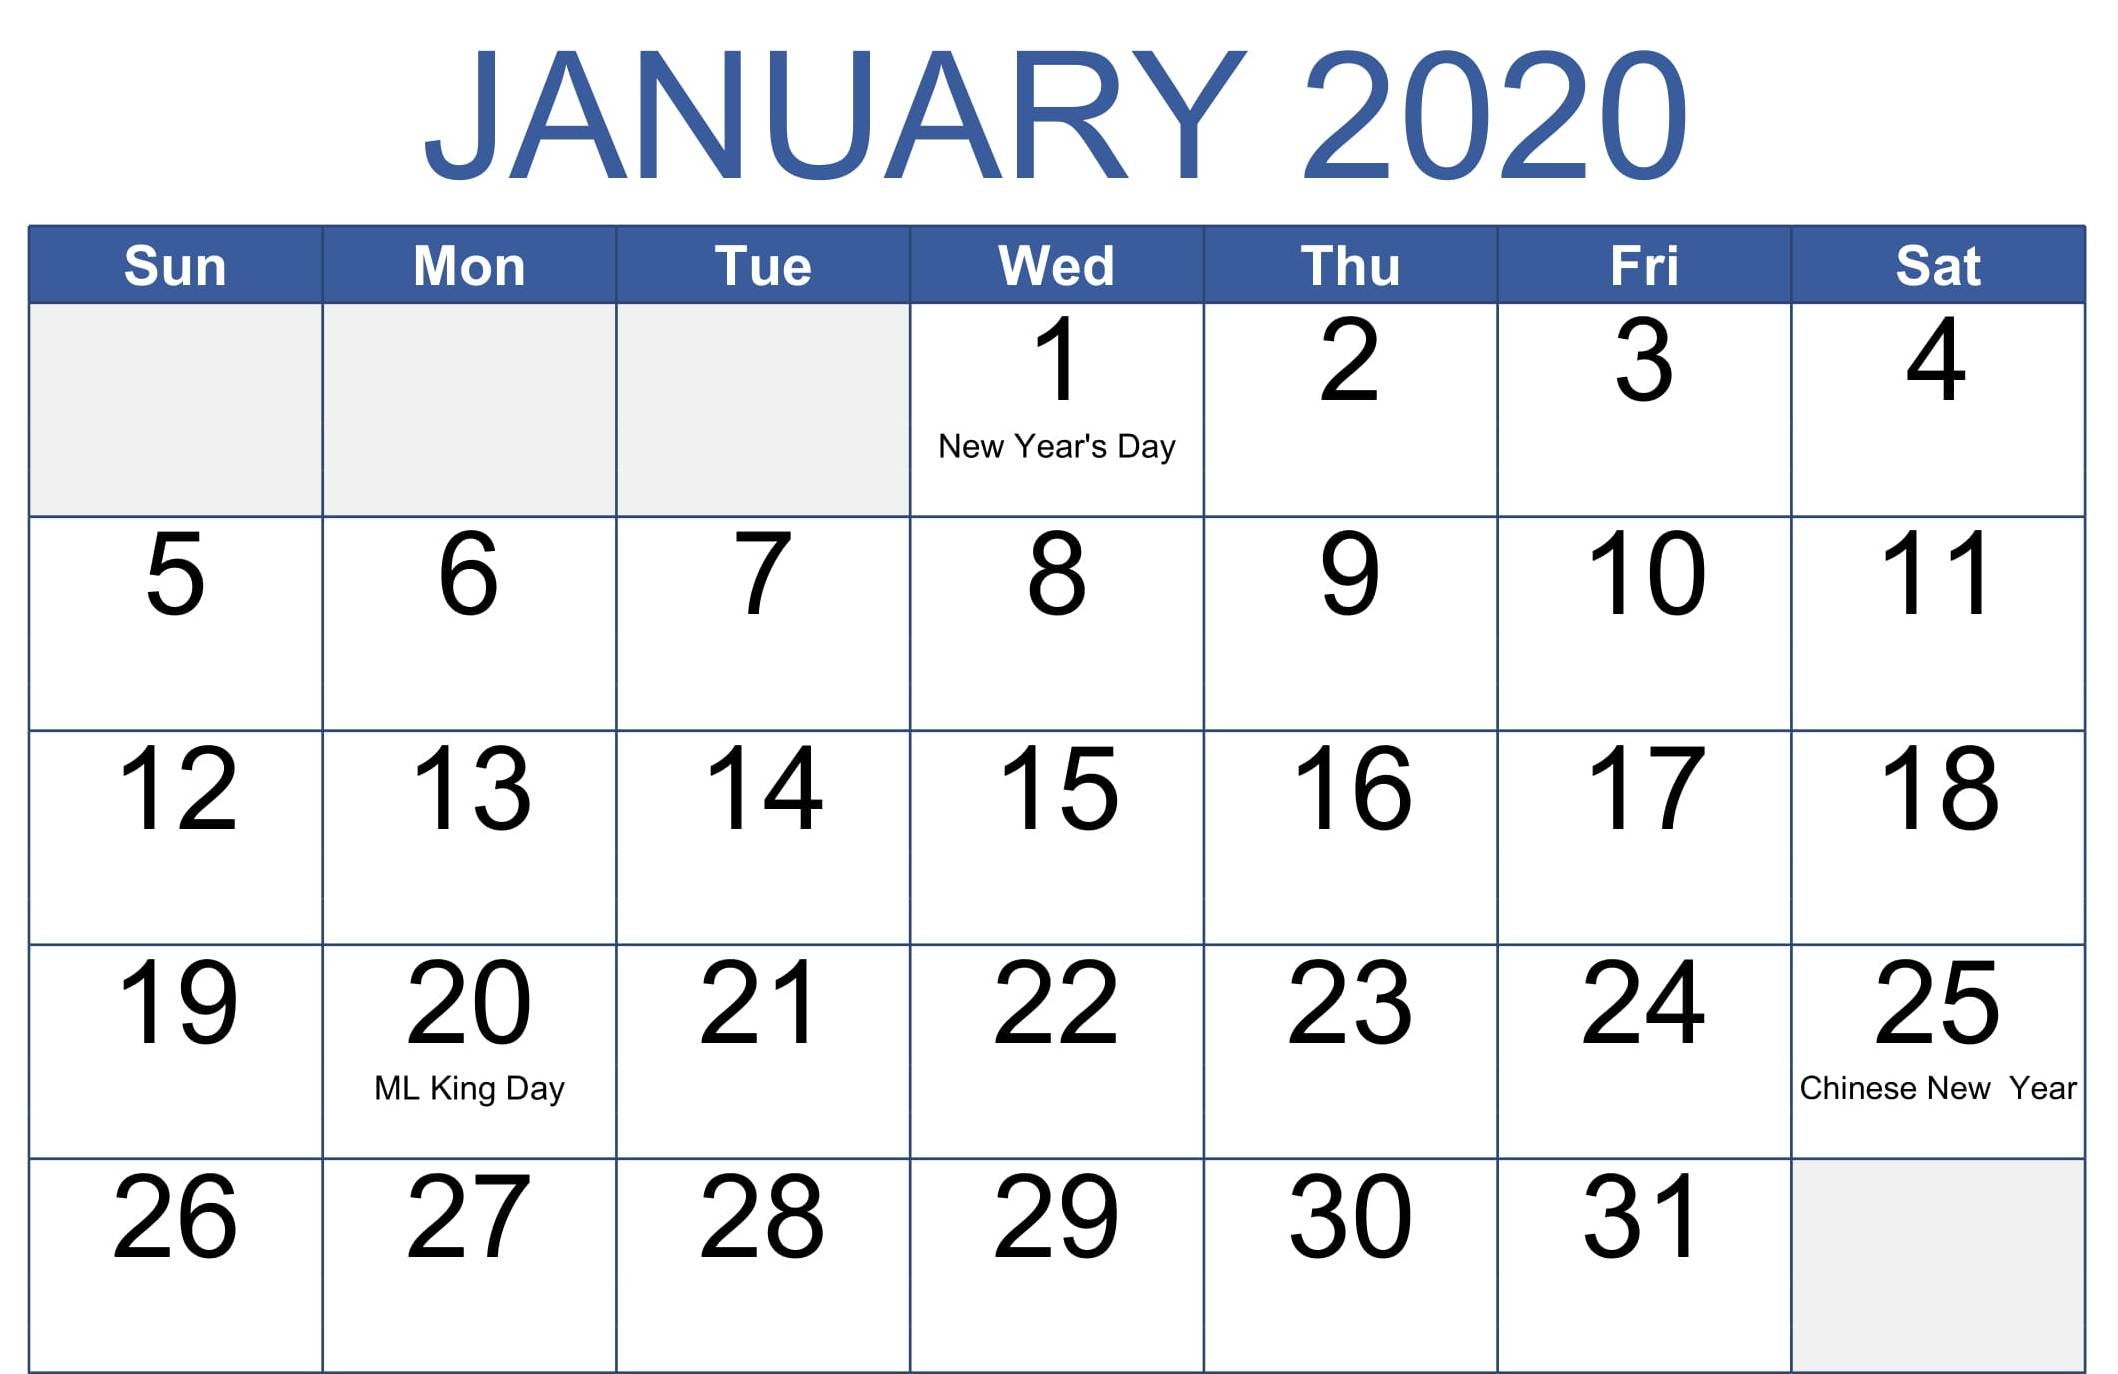 January 2020 Calendar Canada With Holidays & Notes  Set with Jan 2020 Holiday